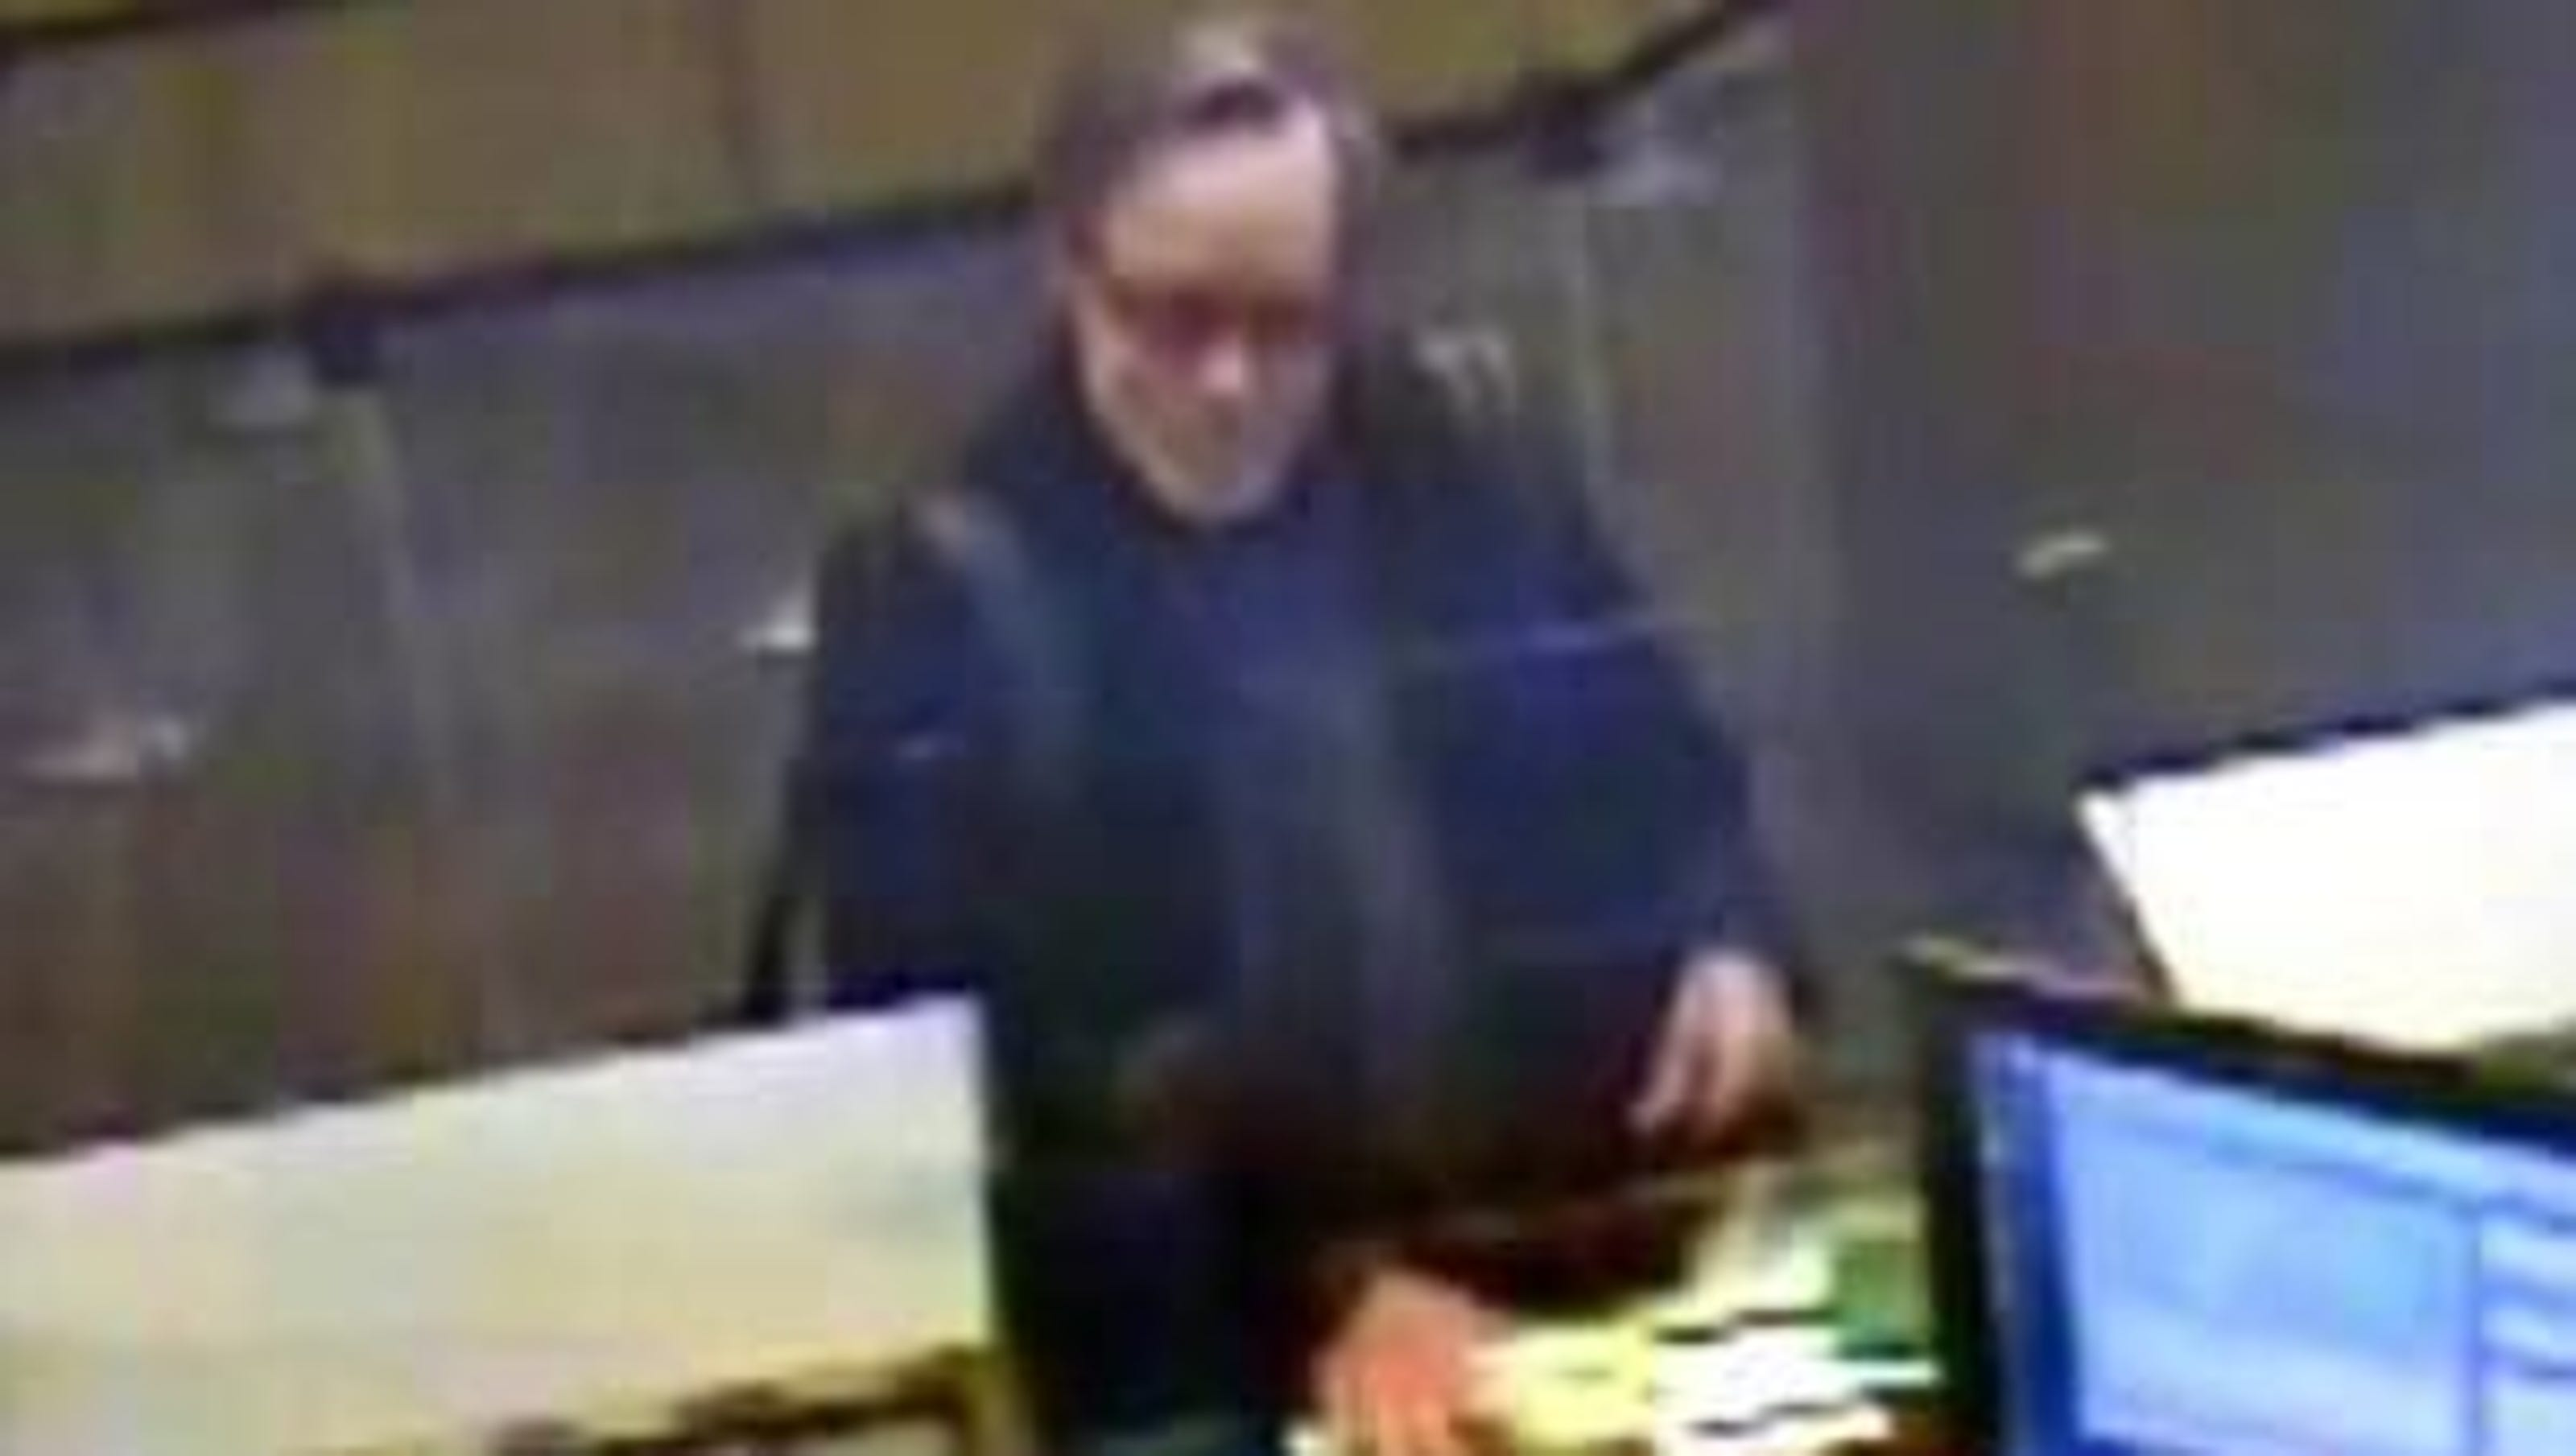 Robbery or art? 5 craziest crimes of the week